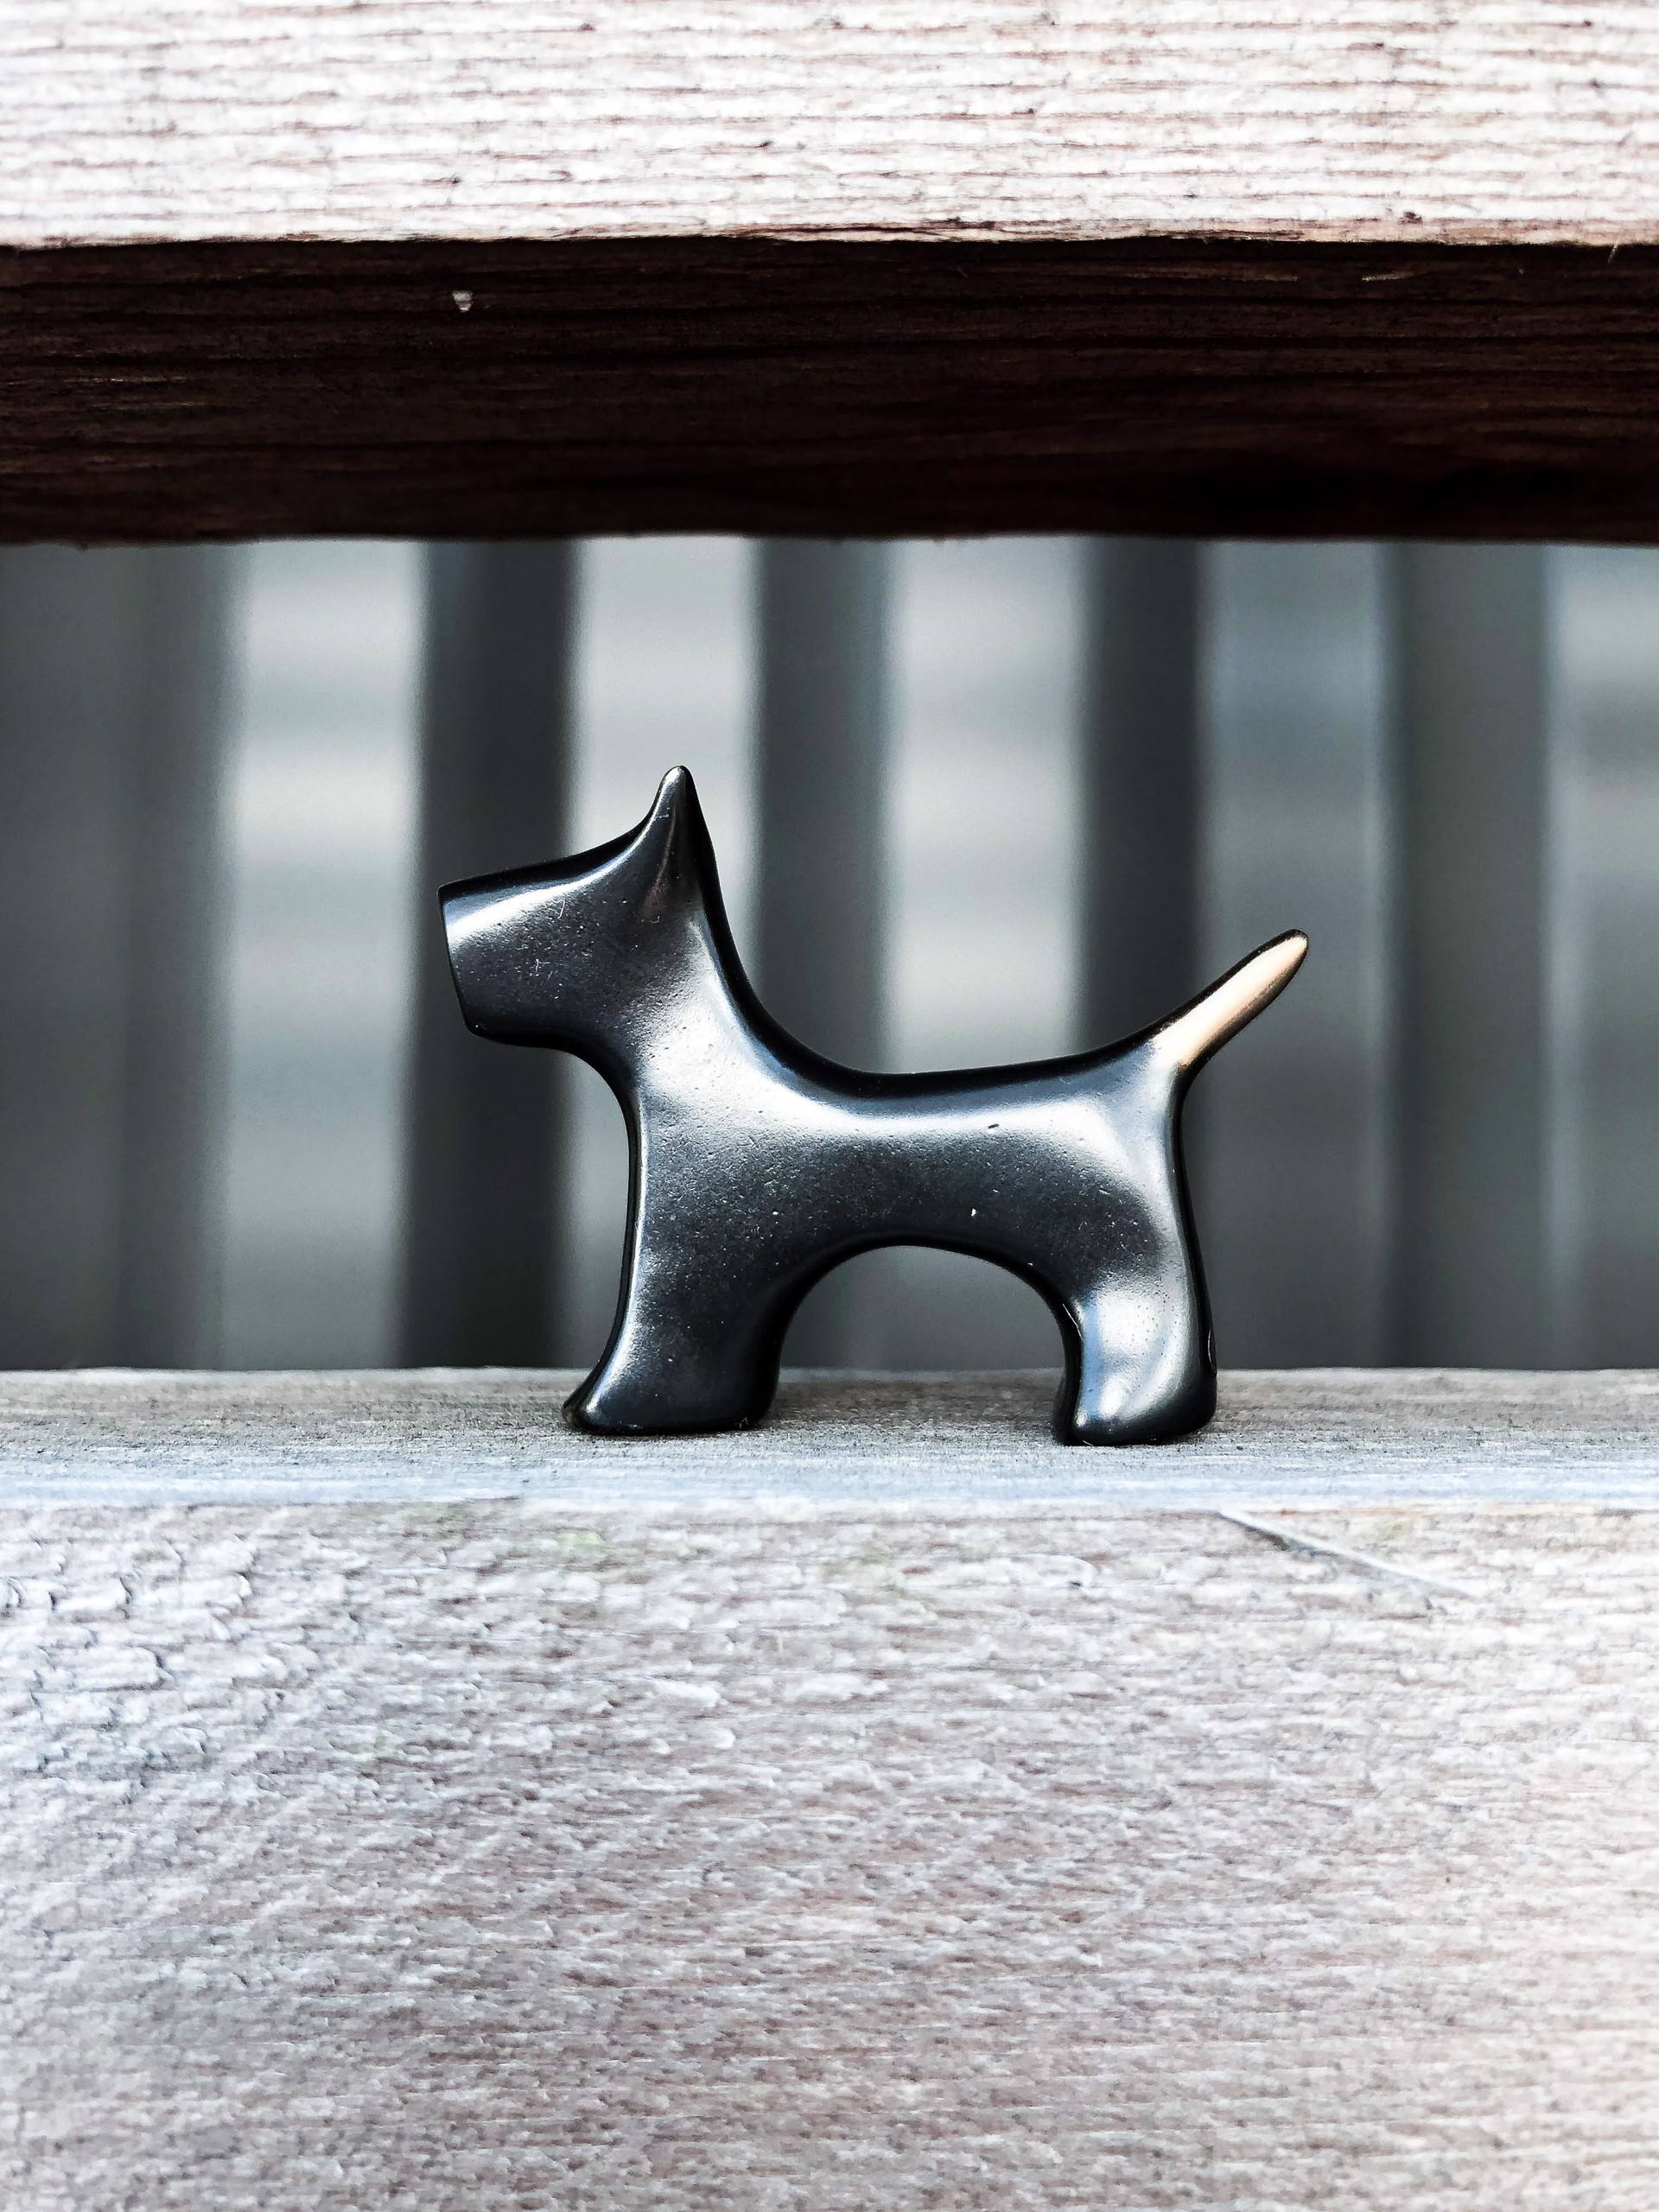 Small Dog by Yenny Cocq